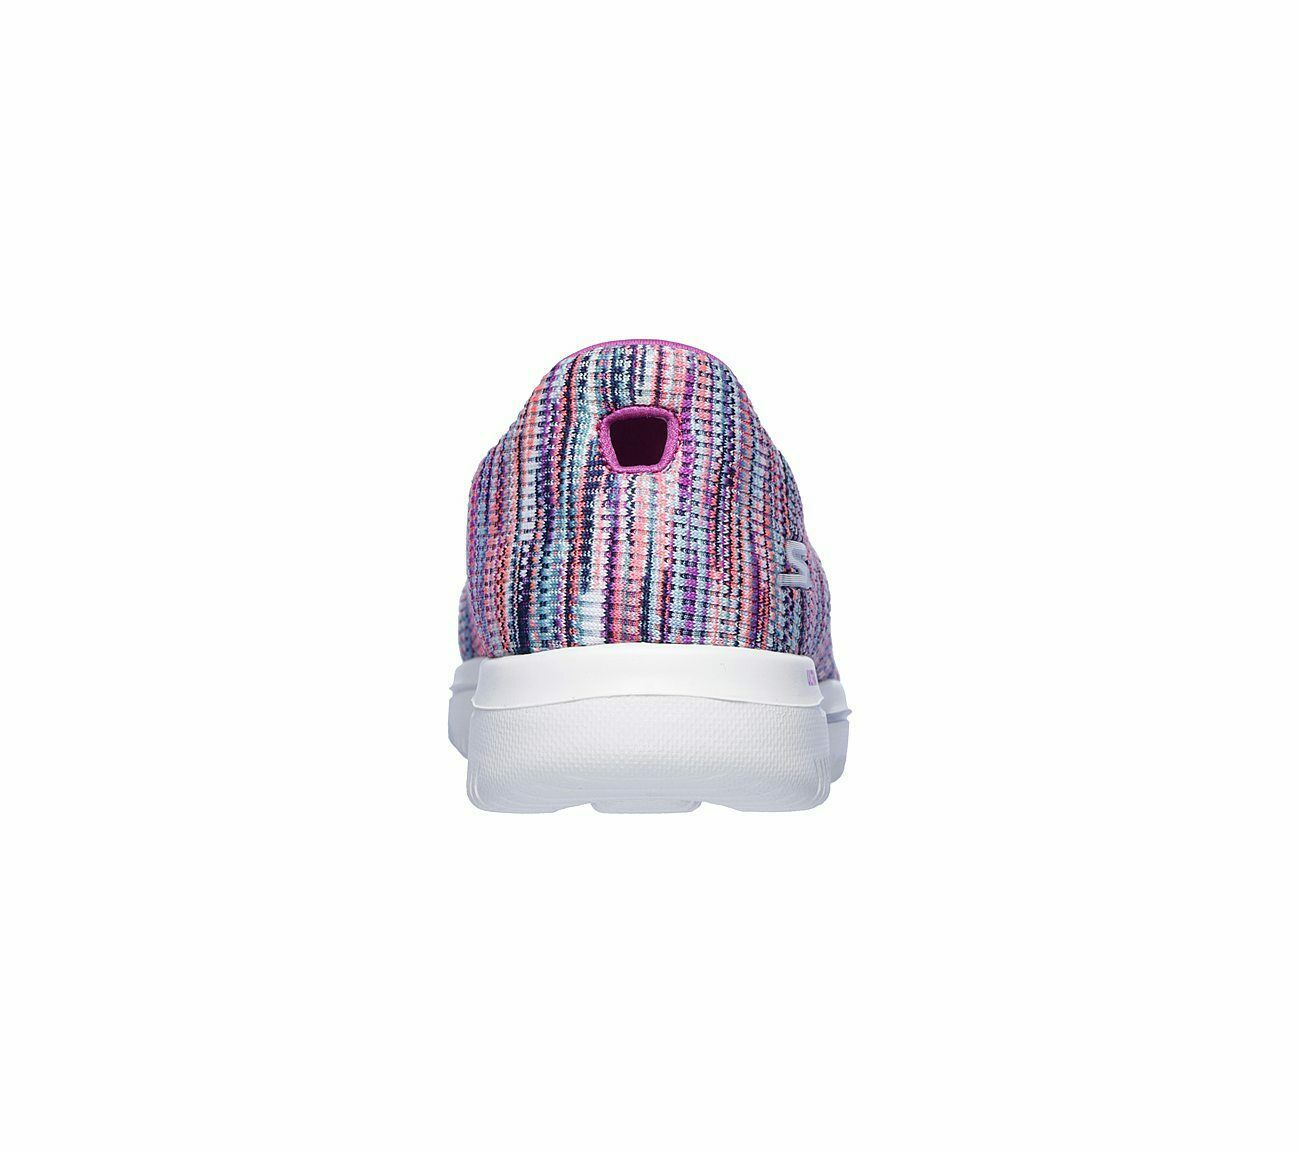 Skechers Shoes Purple Pink Go Walk Evolution Women's Sporty Casual Slip On 15759 image 6